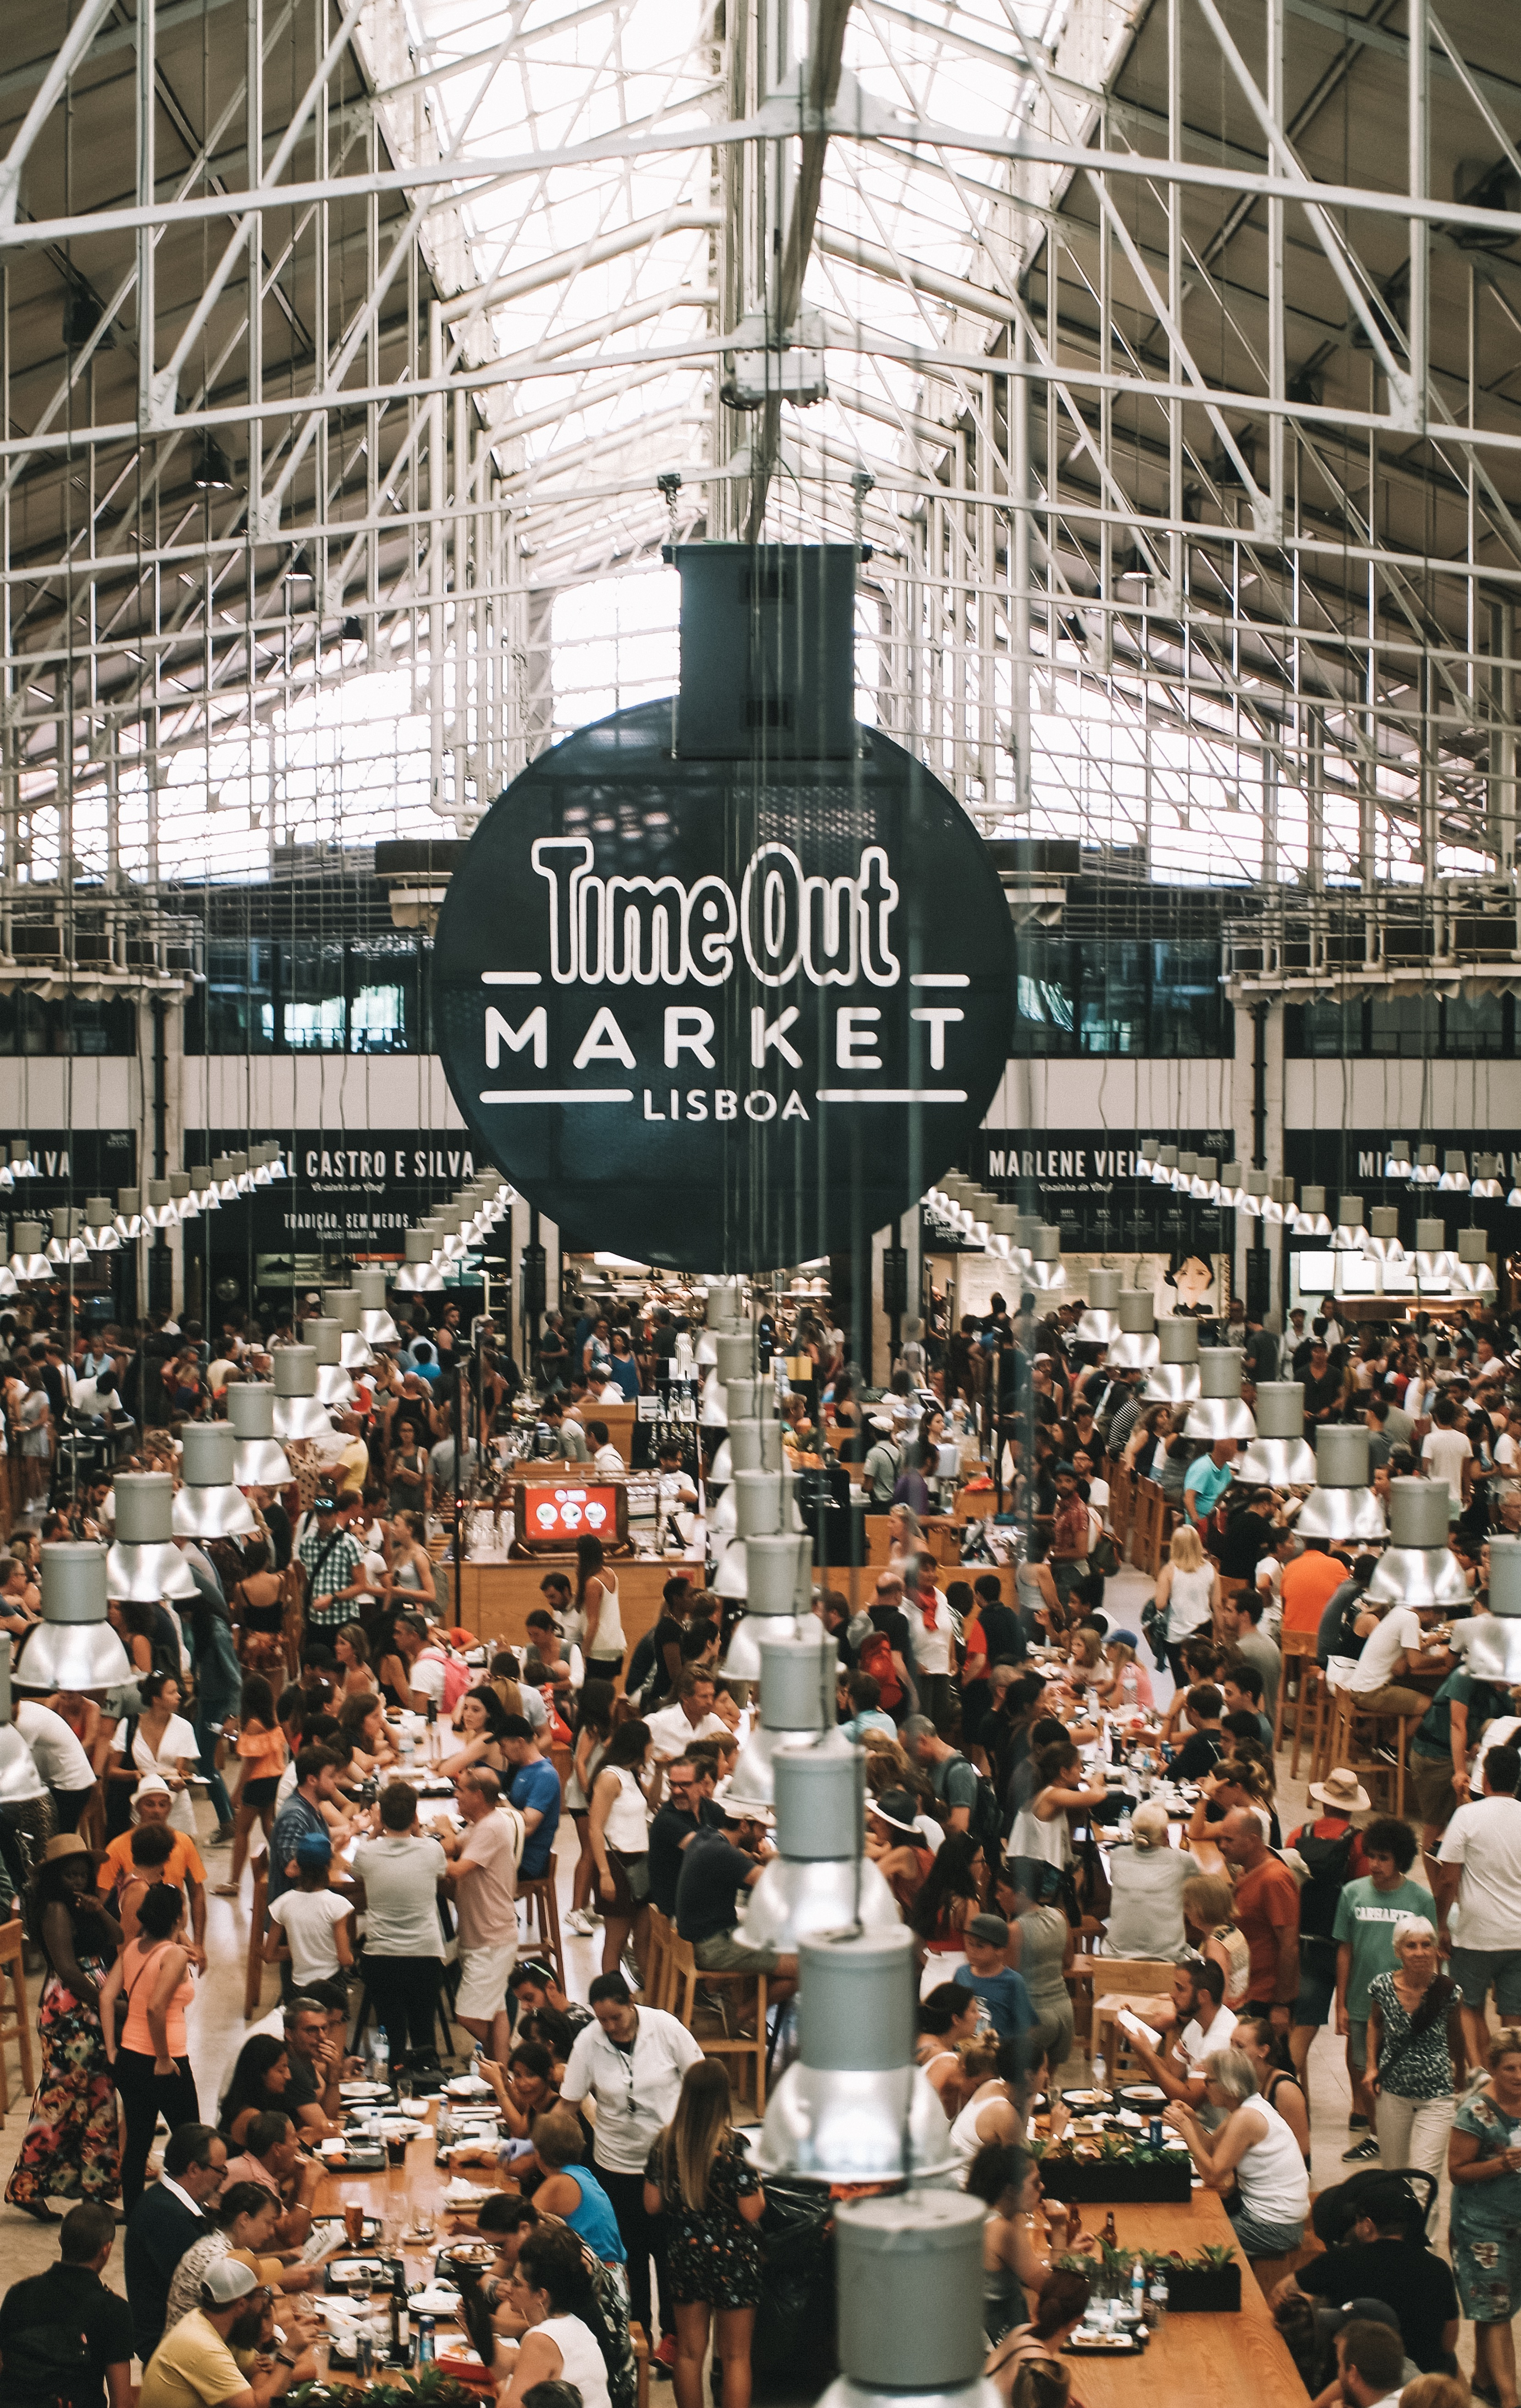 LISBON FOOD GUIDE - TIMEOUT MARKET